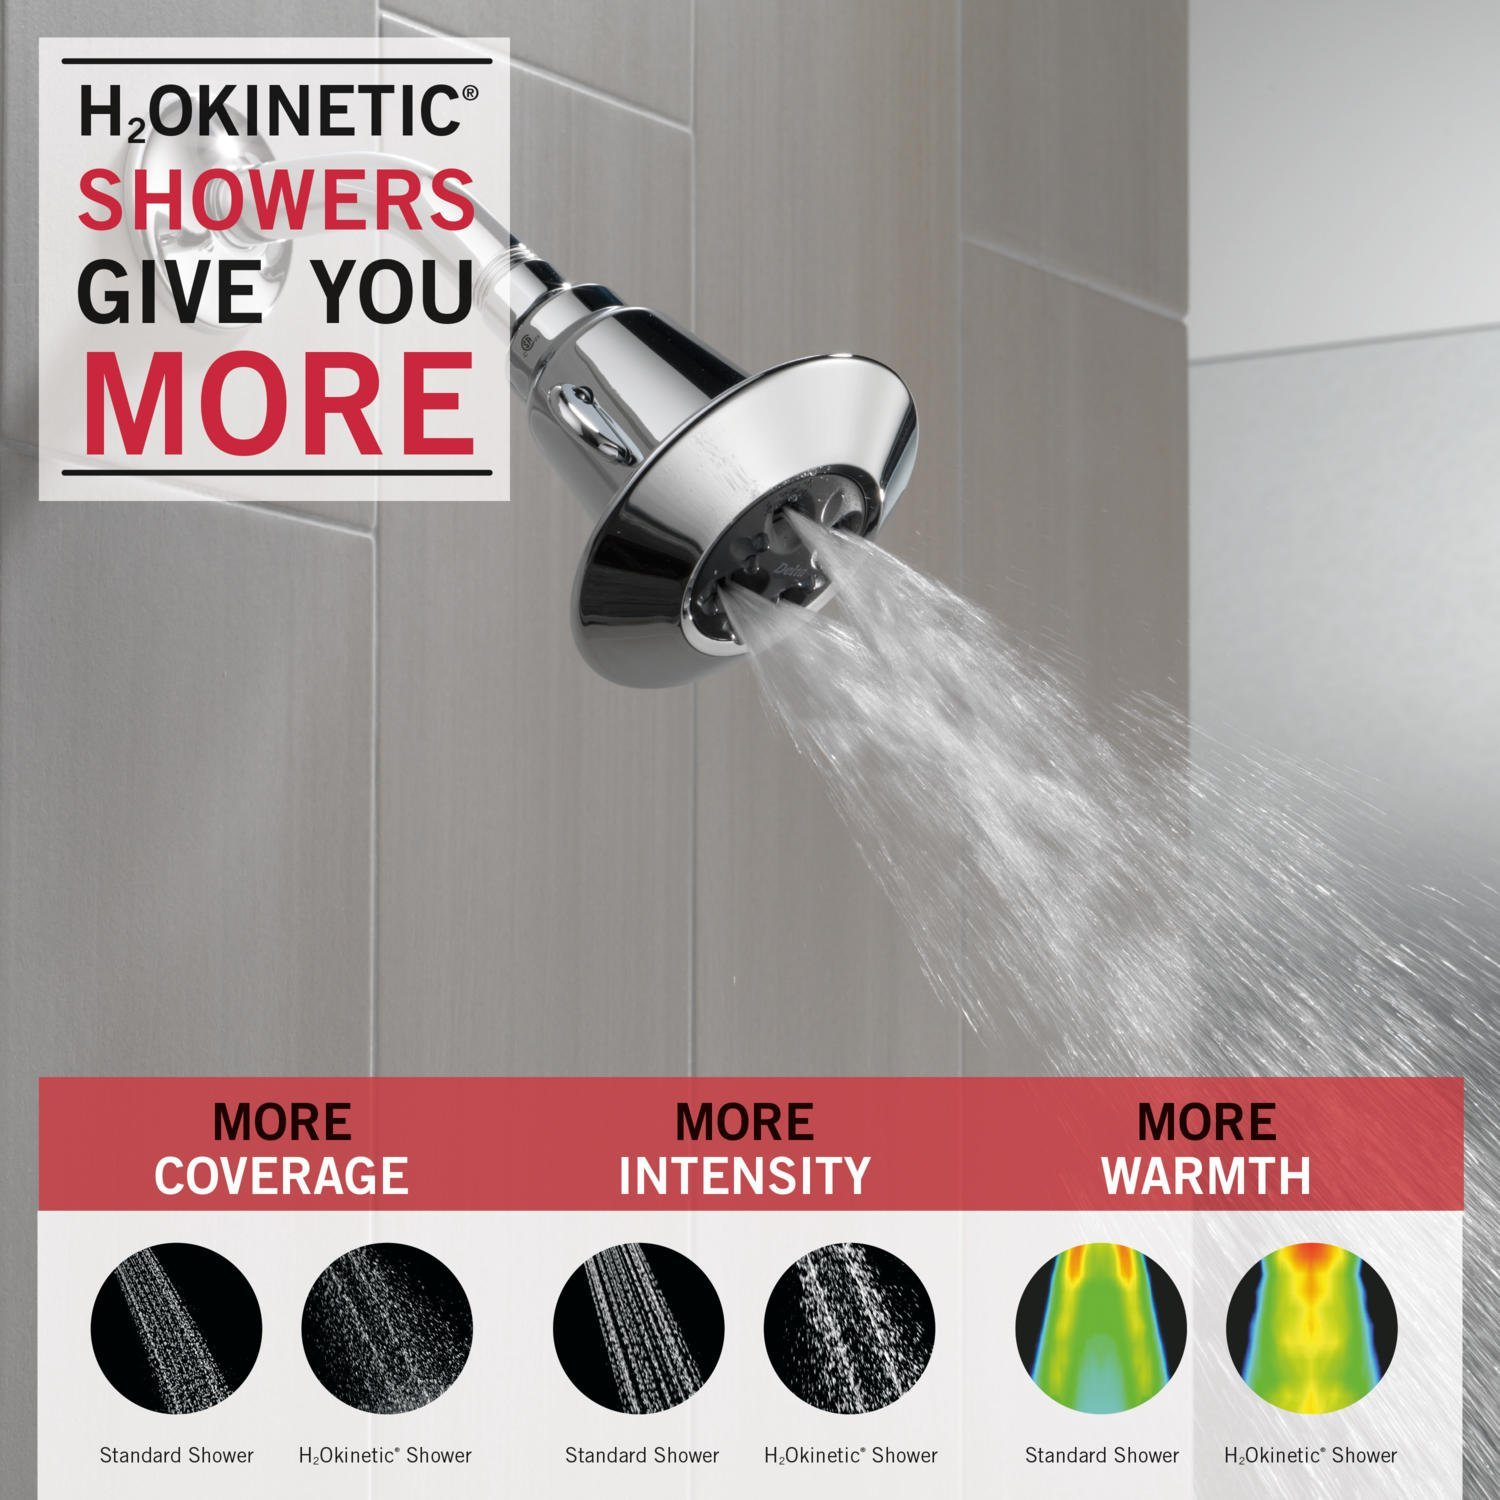 Delta Faucet 75152 Water Amplifying Adjustable Showerhead With H2OKINETIC  Technology, Chrome   Fixed Showerheads   Amazon.com